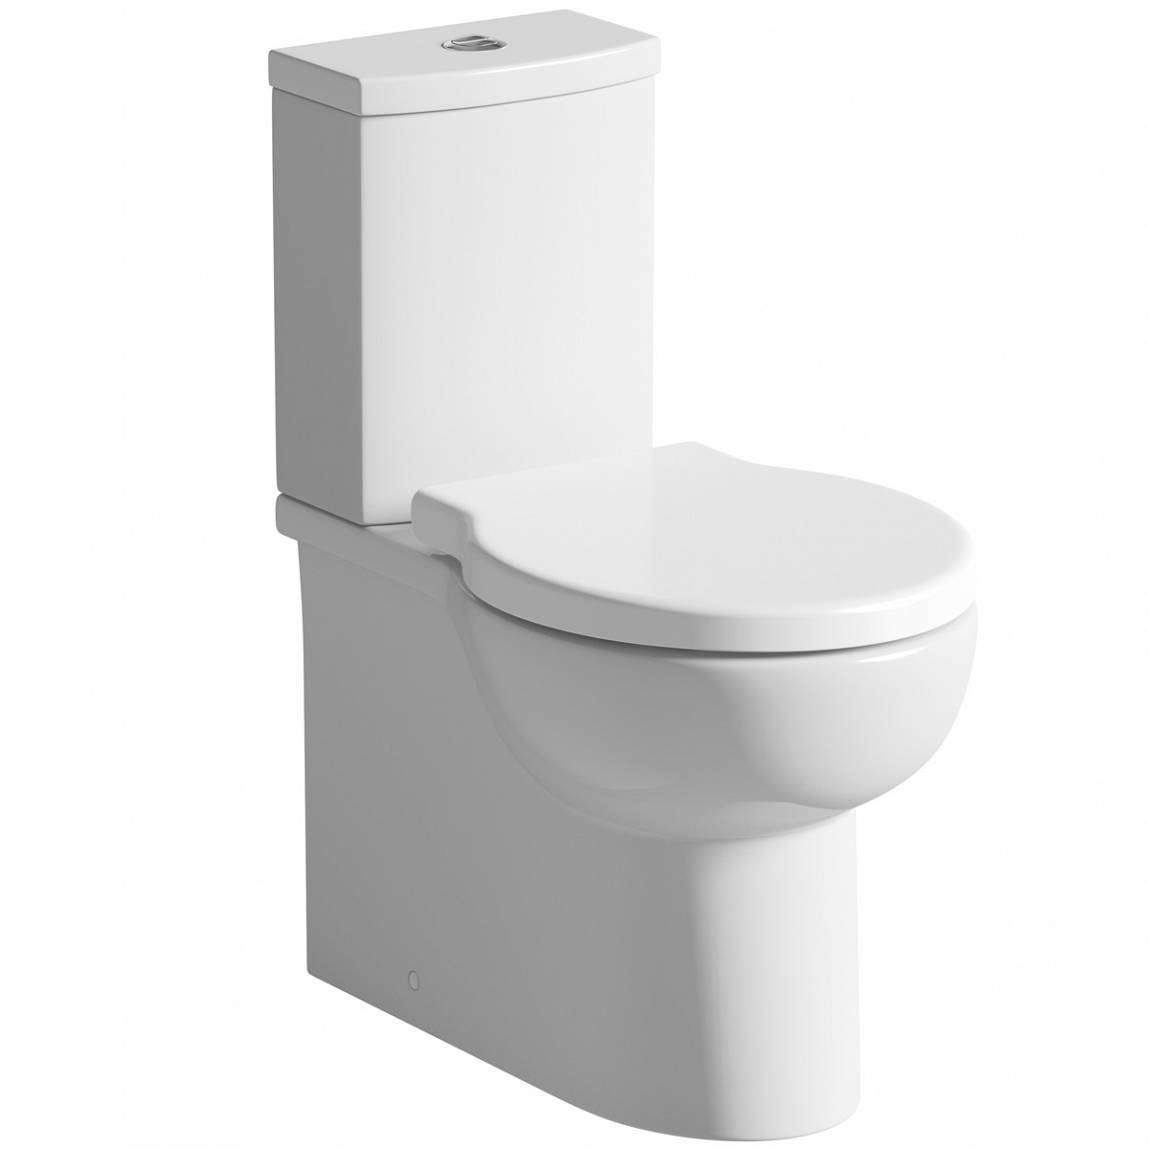 Image of Madison Close Coupled Toilet inc Luxury Soft Close Seat